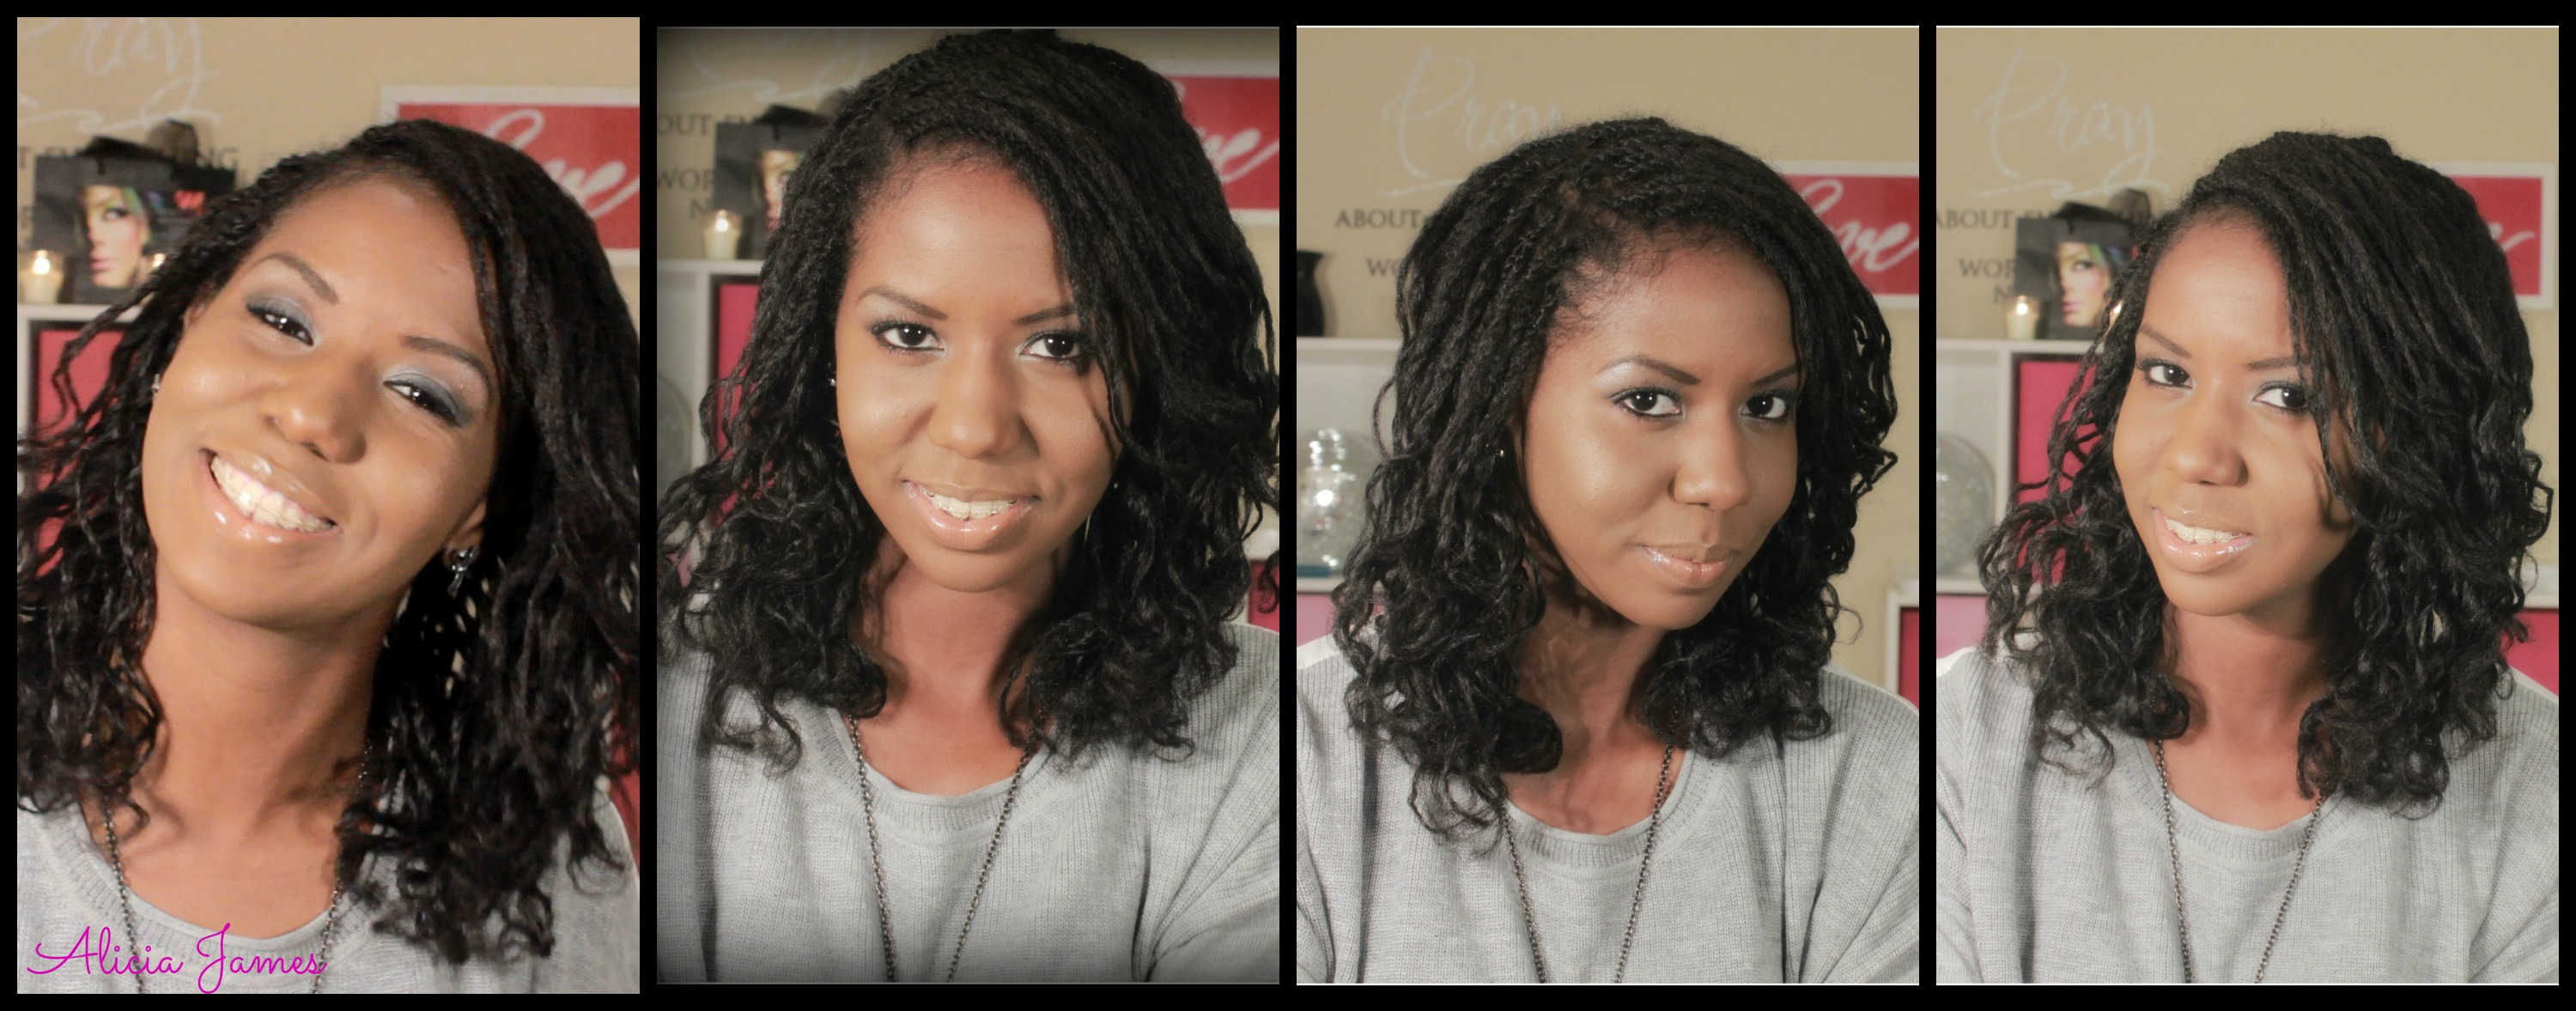 Hairstyle Tryer : Bantu knot out on loose two strand twist  Alicia James, 3000x1177 ...